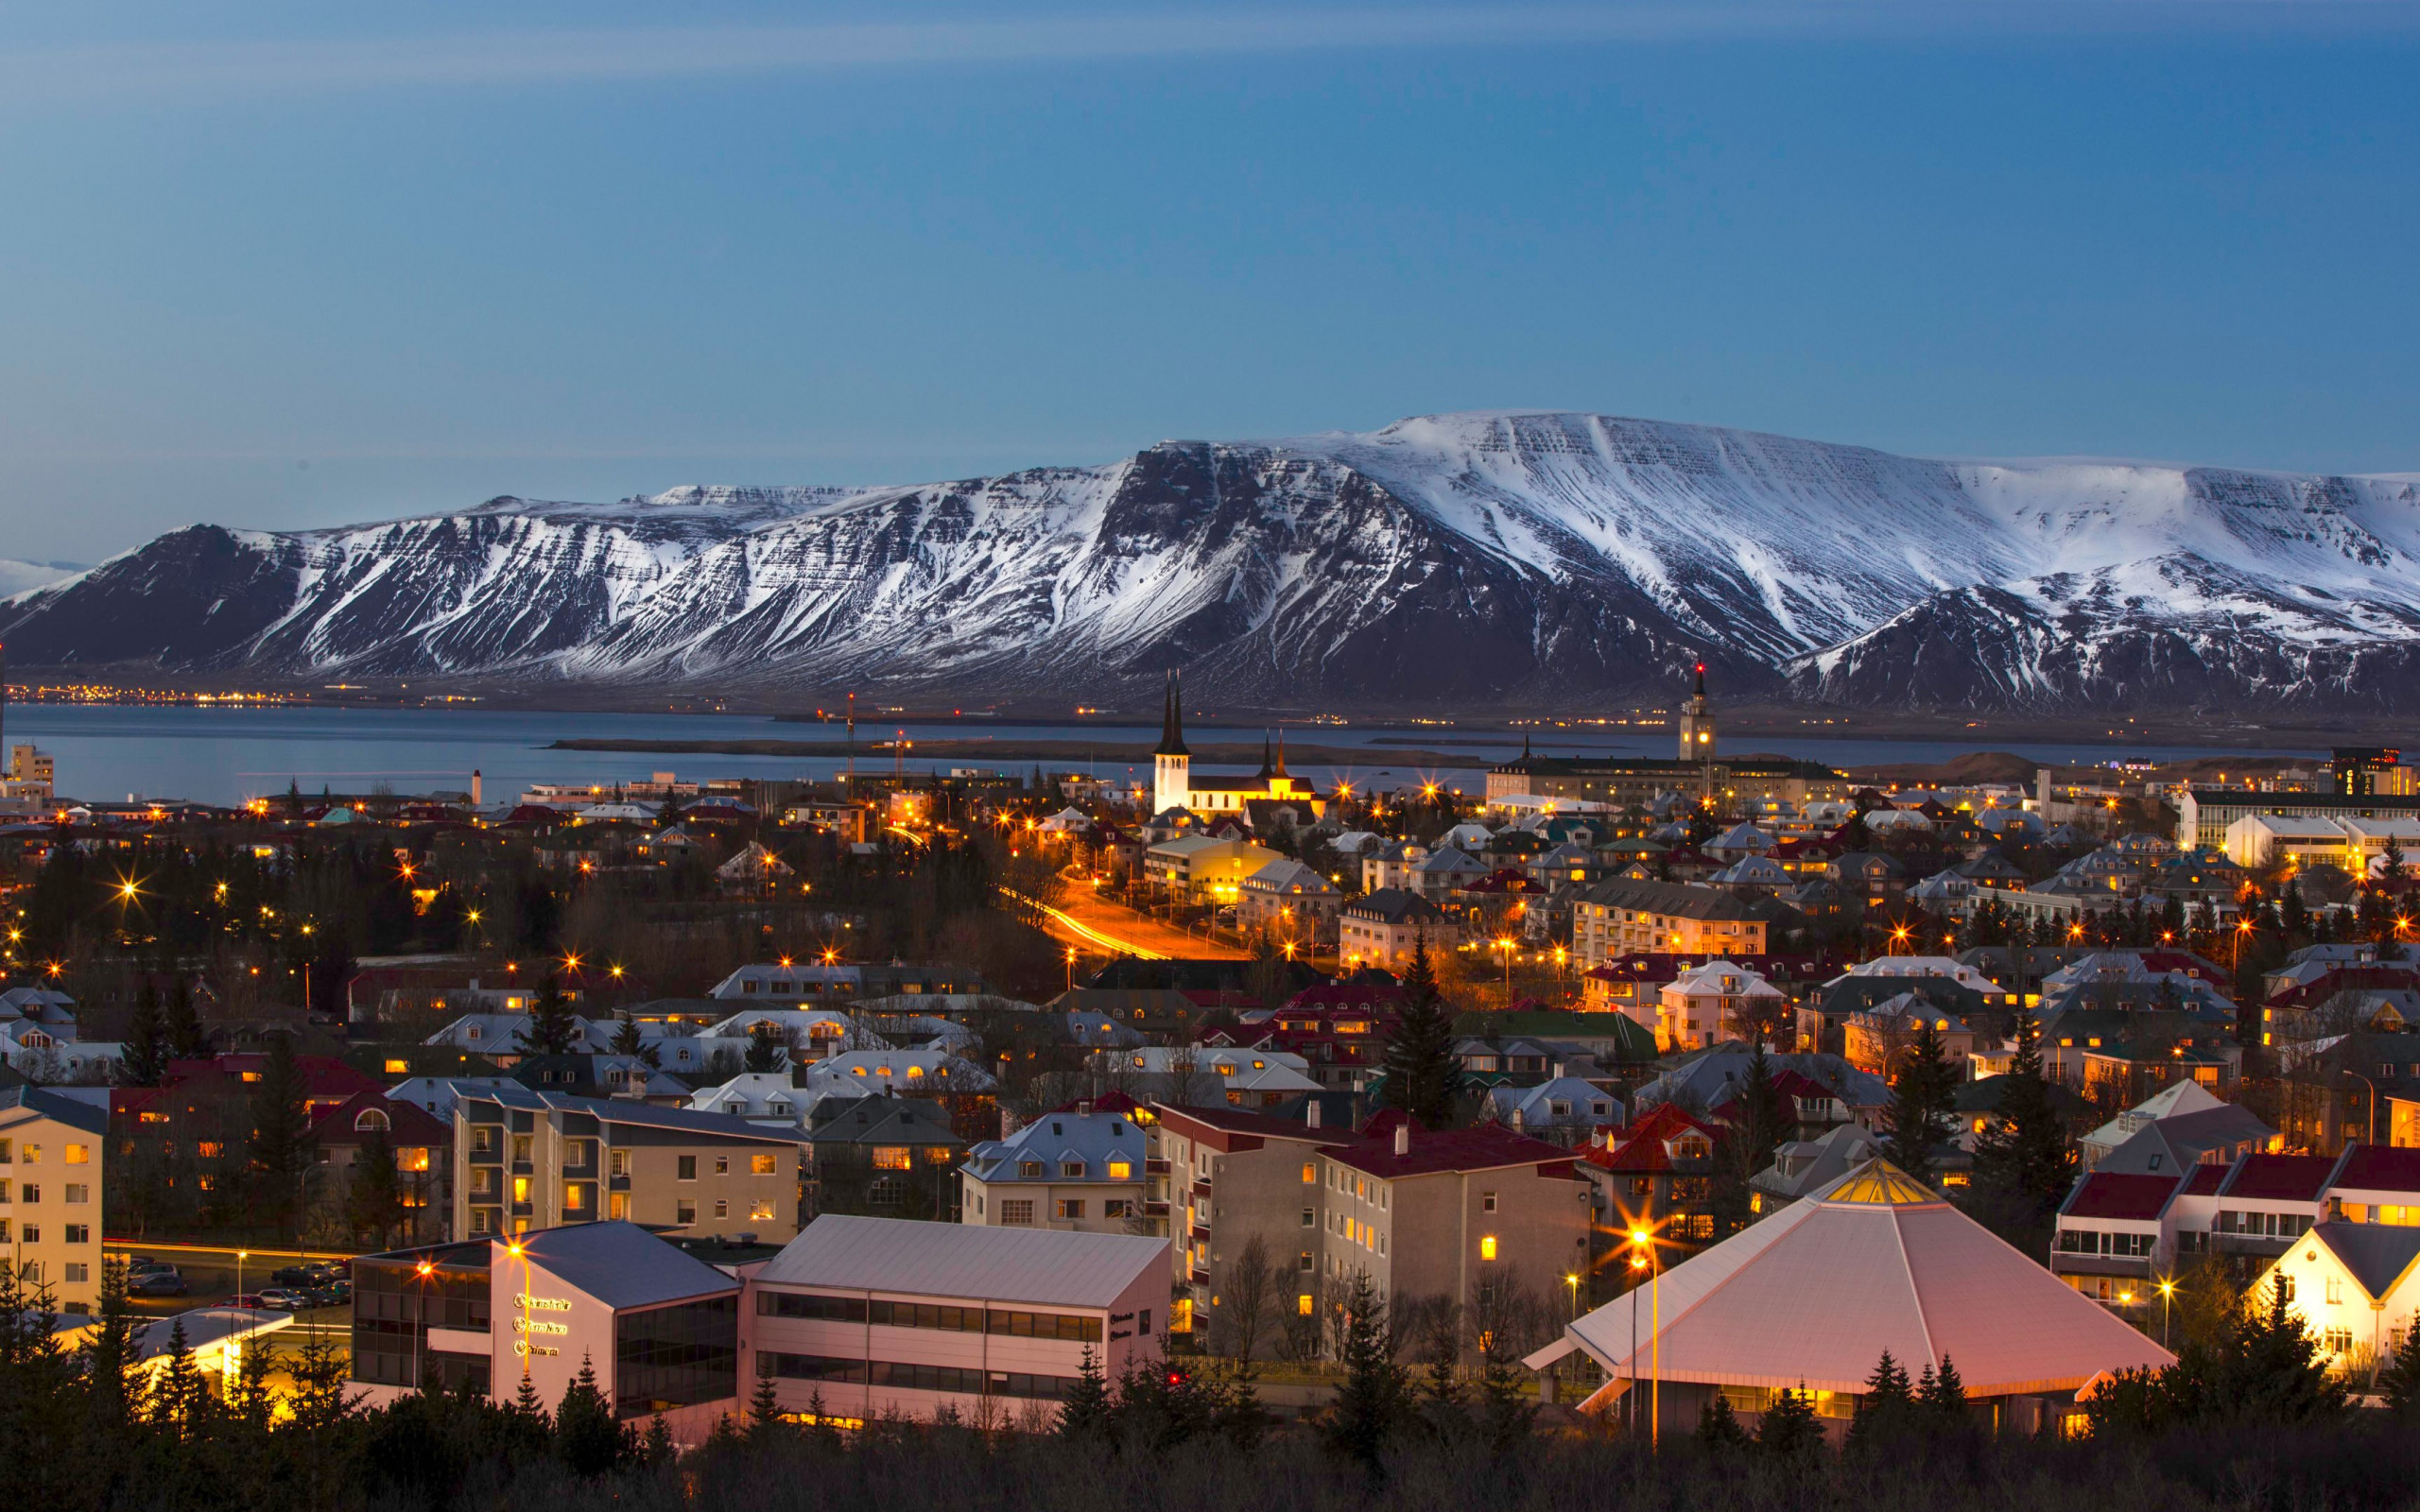 View over the Reykjavik city | 2560x1600 wallpaper